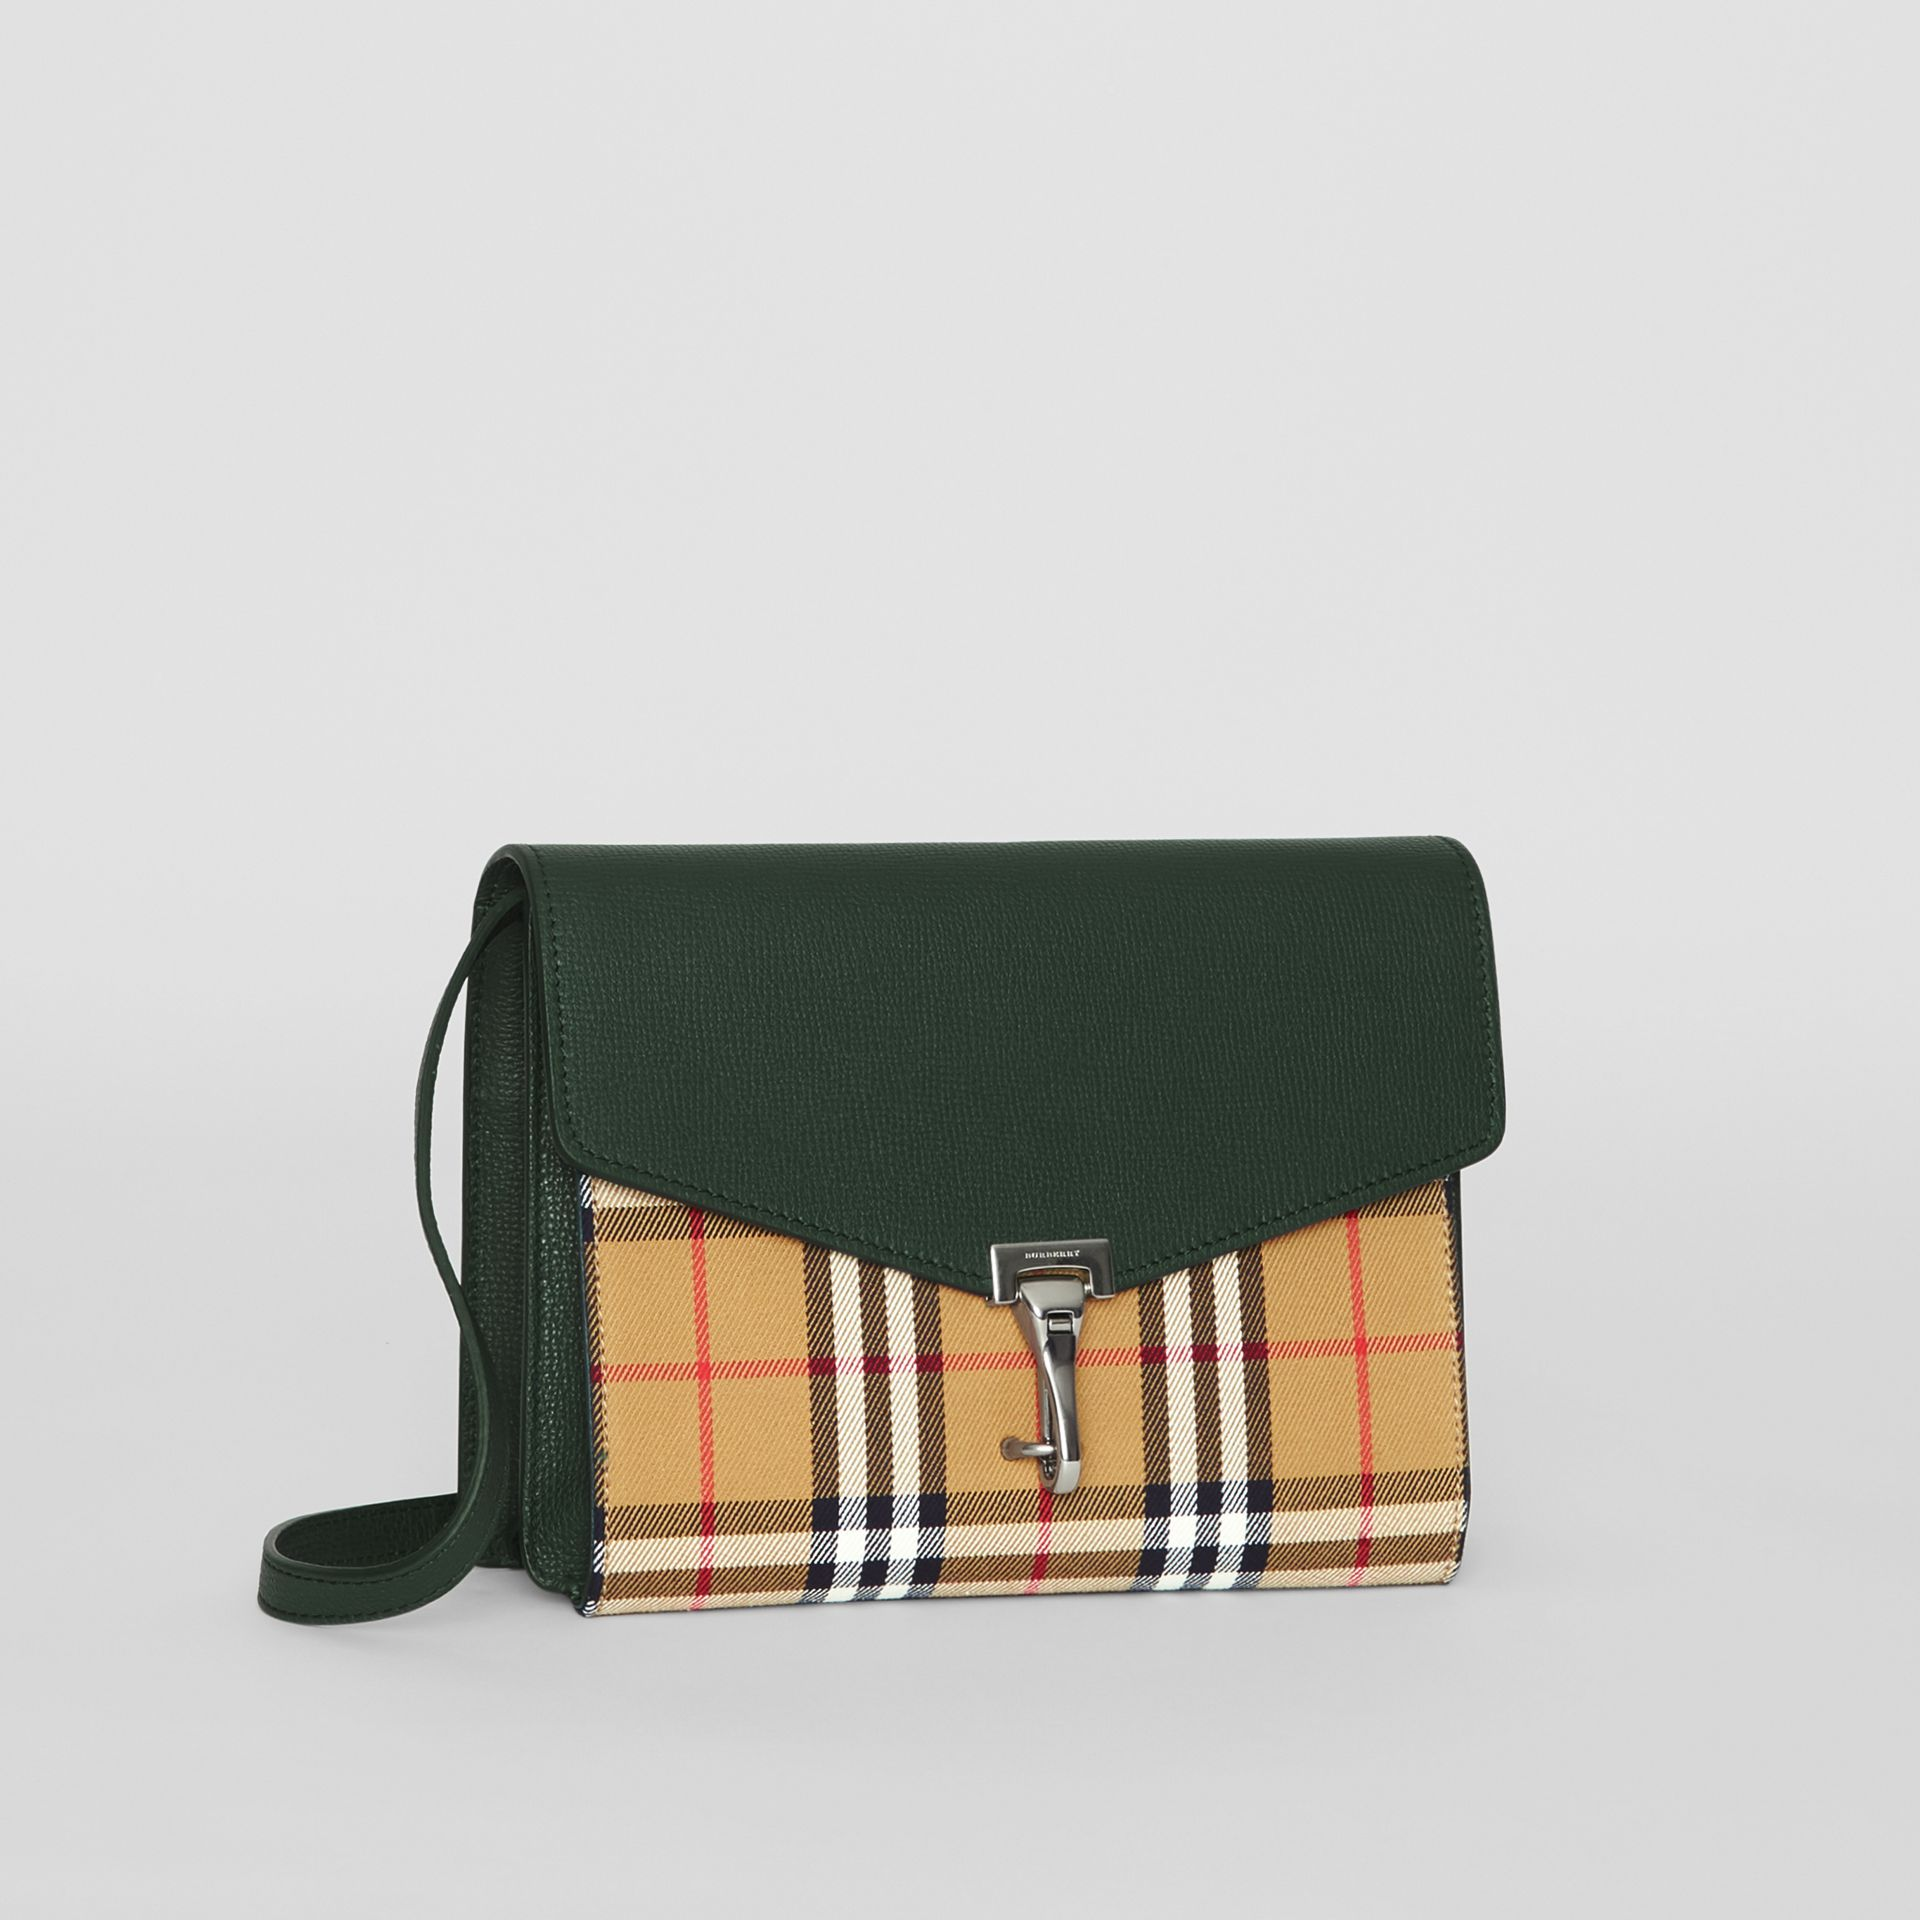 Small Vintage Check and Leather Crossbody Bag in Green - Women | Burberry Australia - gallery image 6